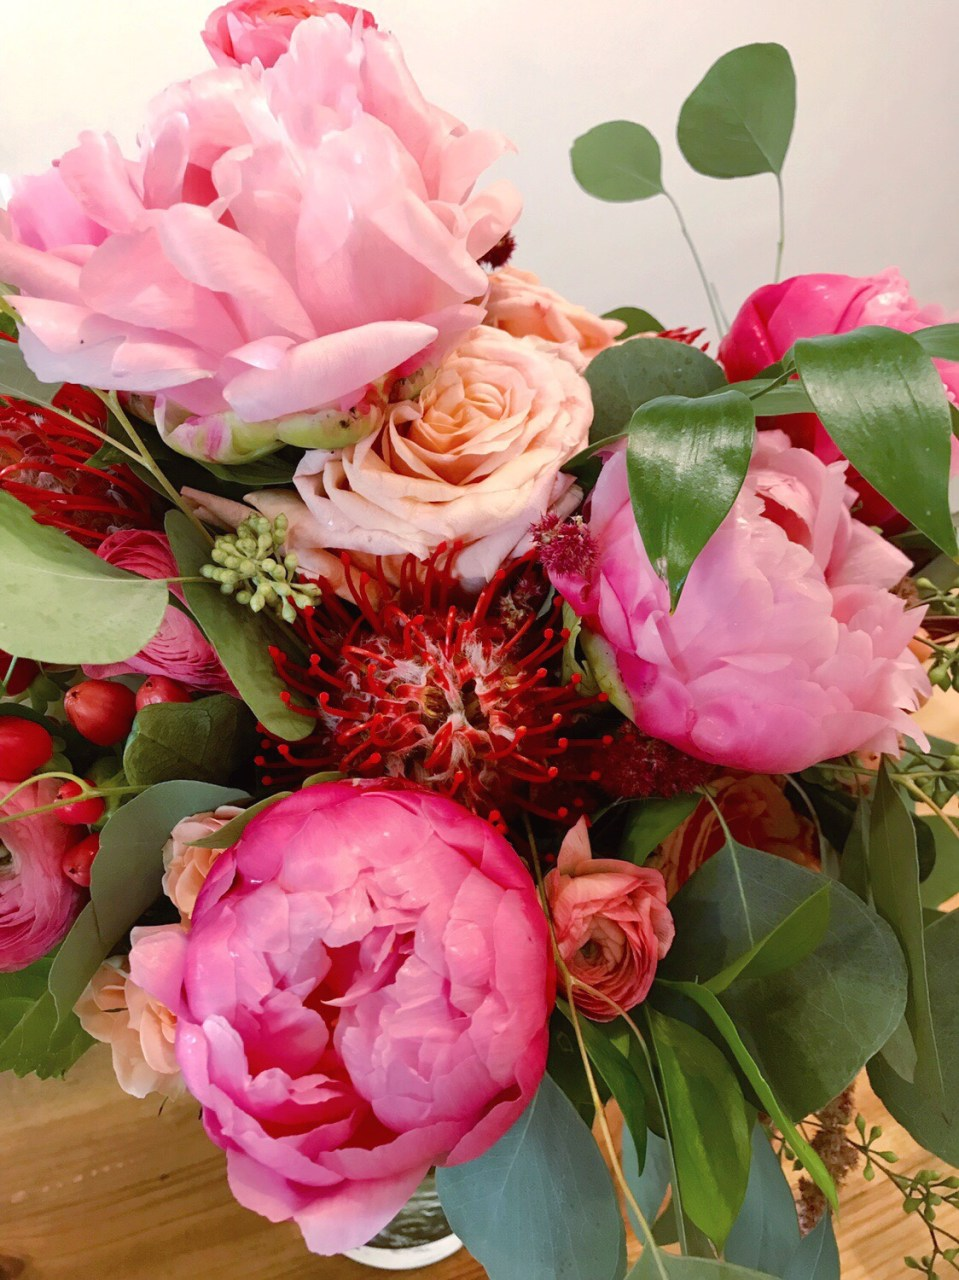 Closeup of bridal bouquet with pink peonies, peach roses and ranunculus, red pin cushion protea, and assorted fresh eucalyptus